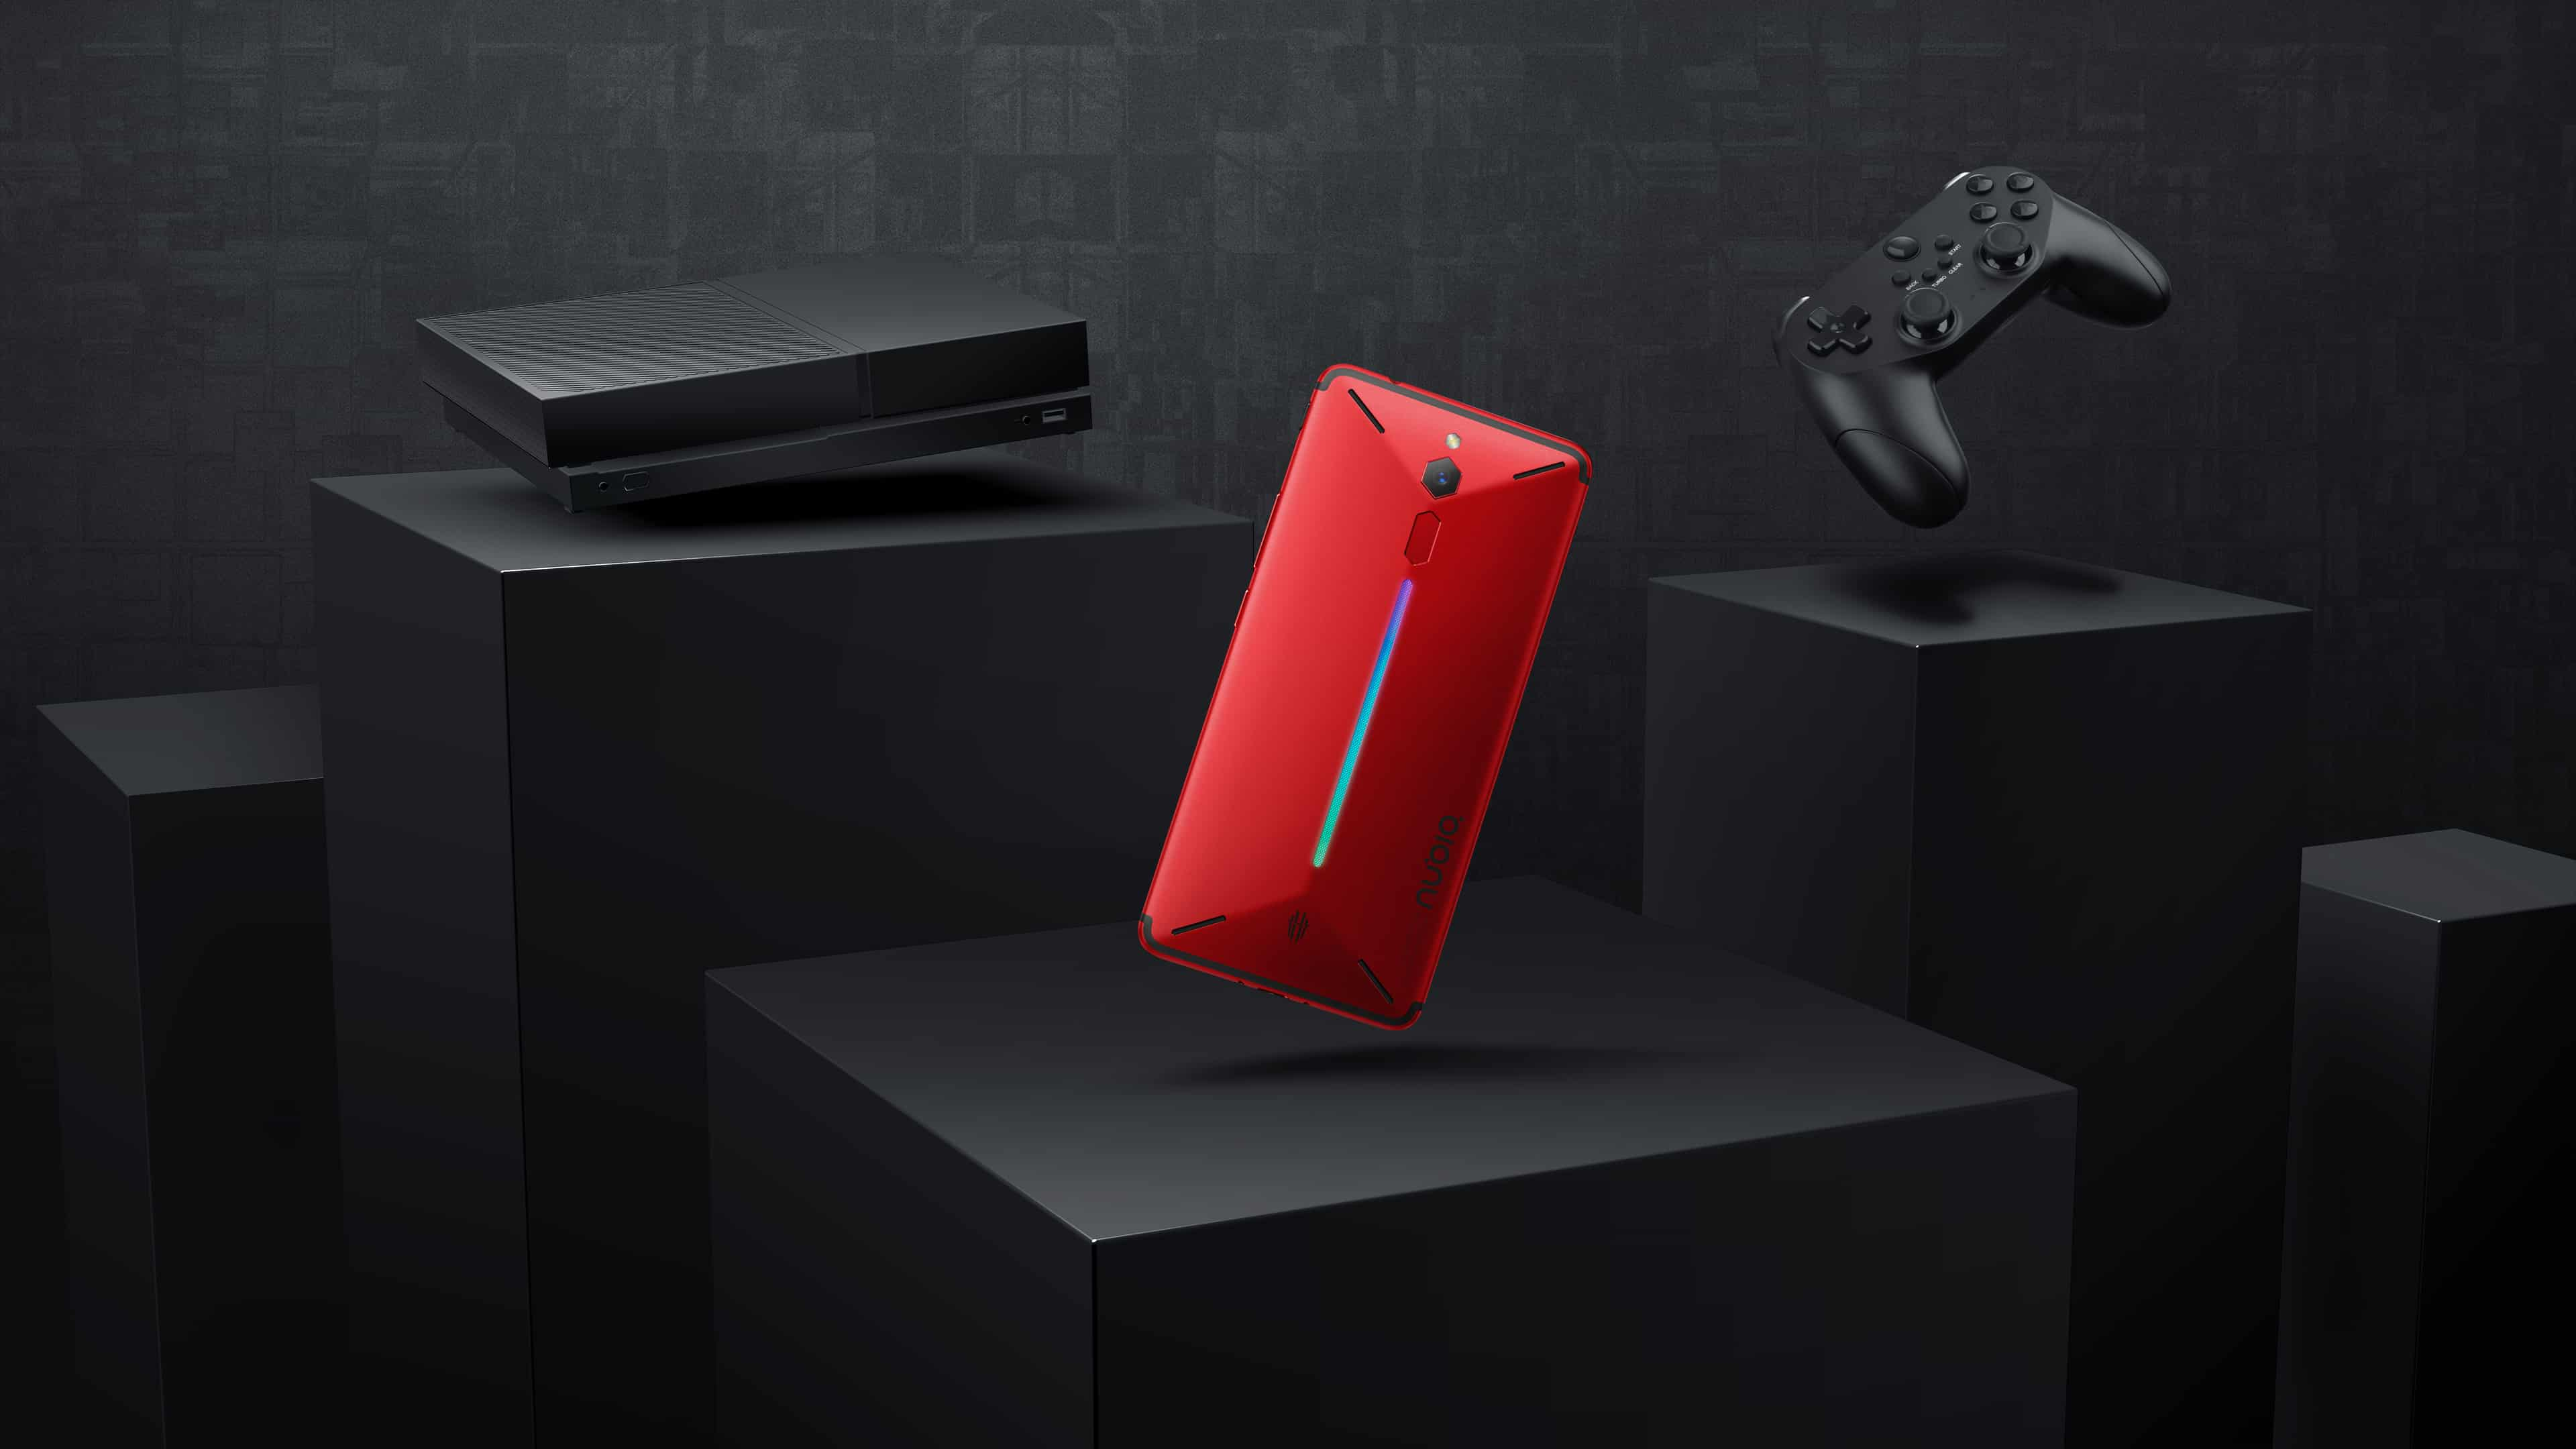 Nubia Red Magic 3S with Snapdragon 855+ SoC may launch in September